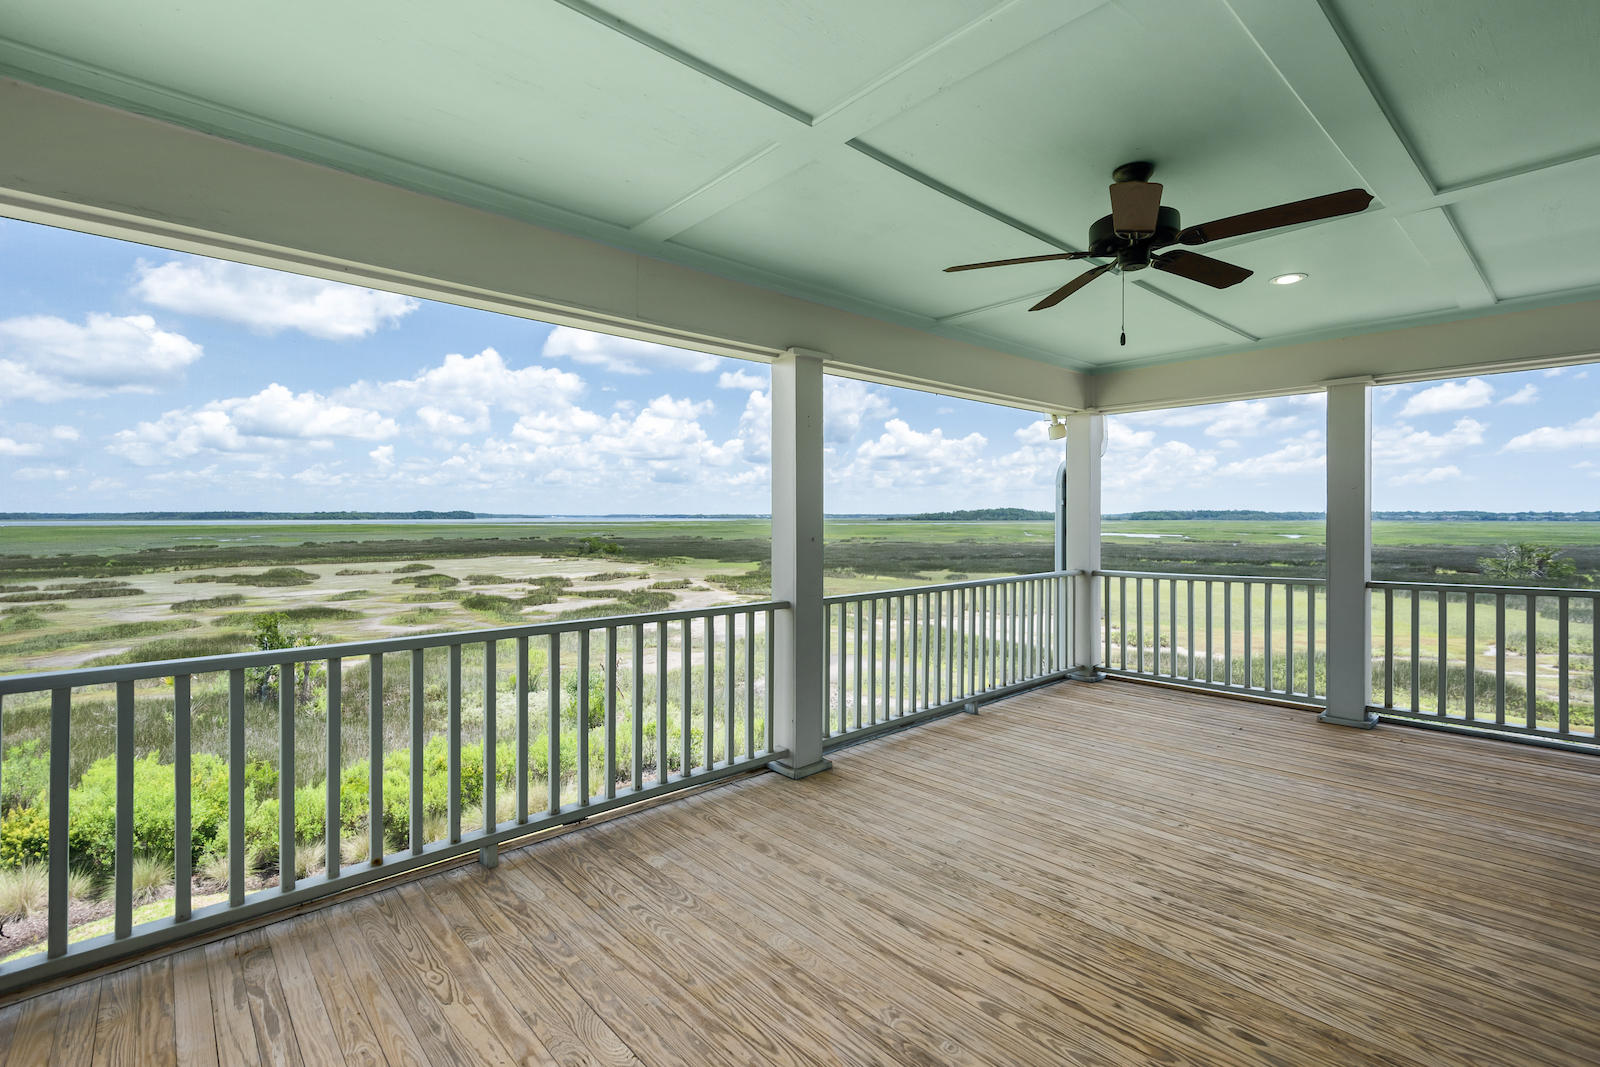 Belle Hall Homes For Sale - 508 Island Walk West, Mount Pleasant, SC - 2